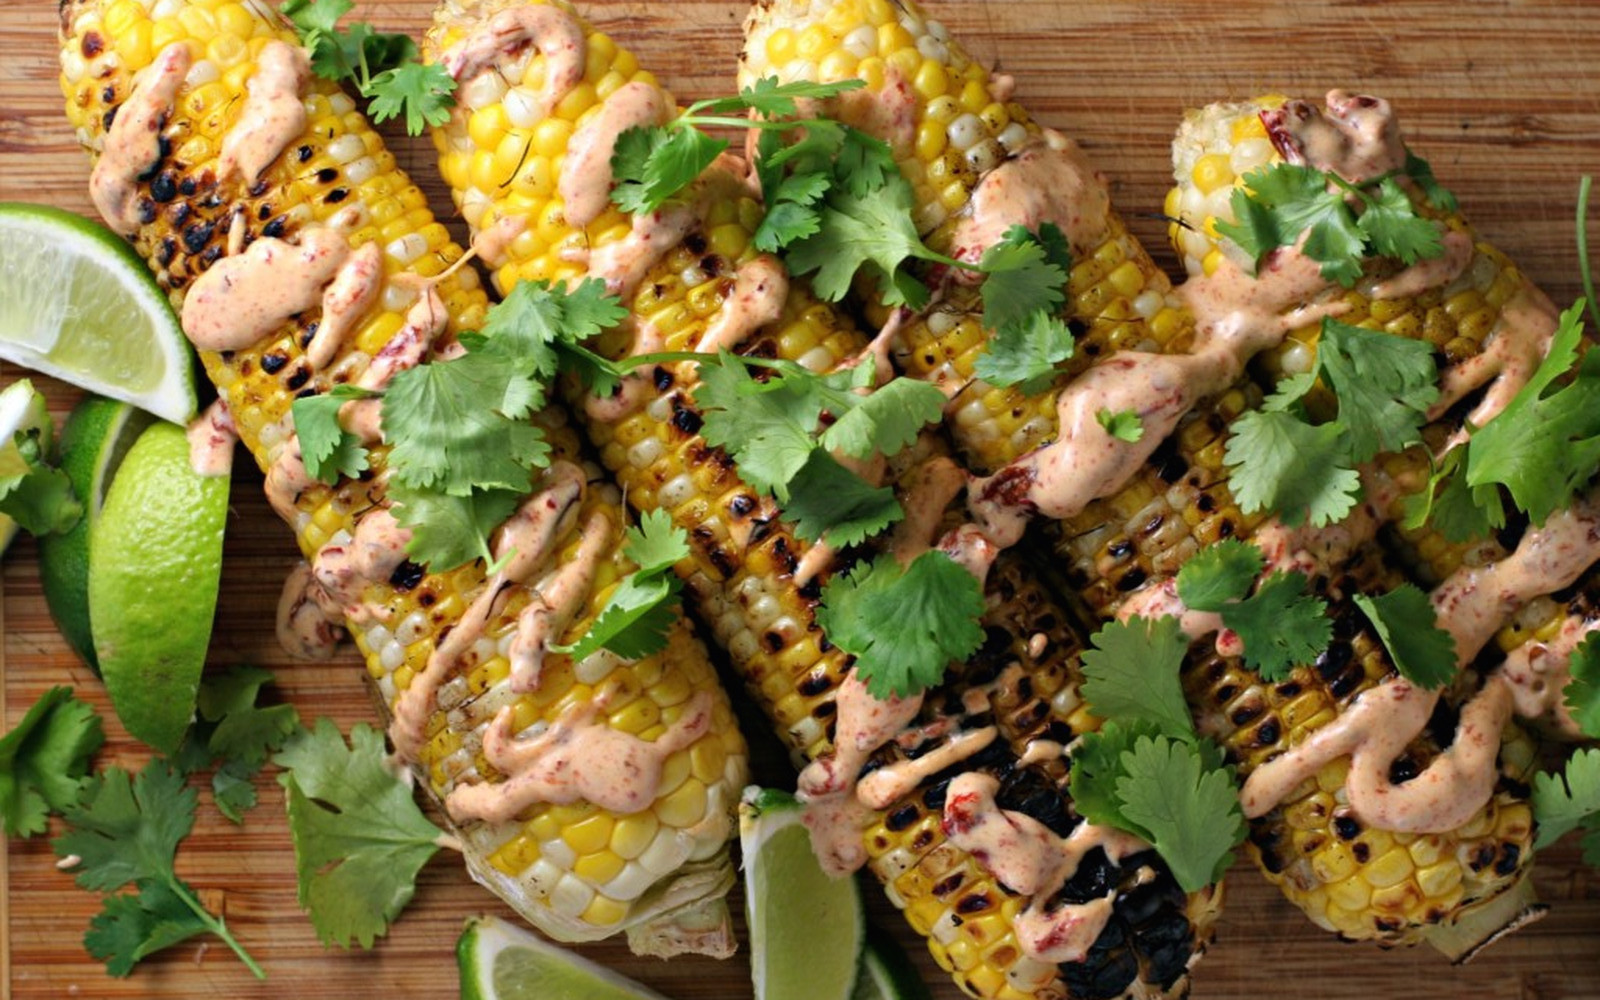 Hot n' Spicy Vegan Mexican Street Corn [Gluten-Free]